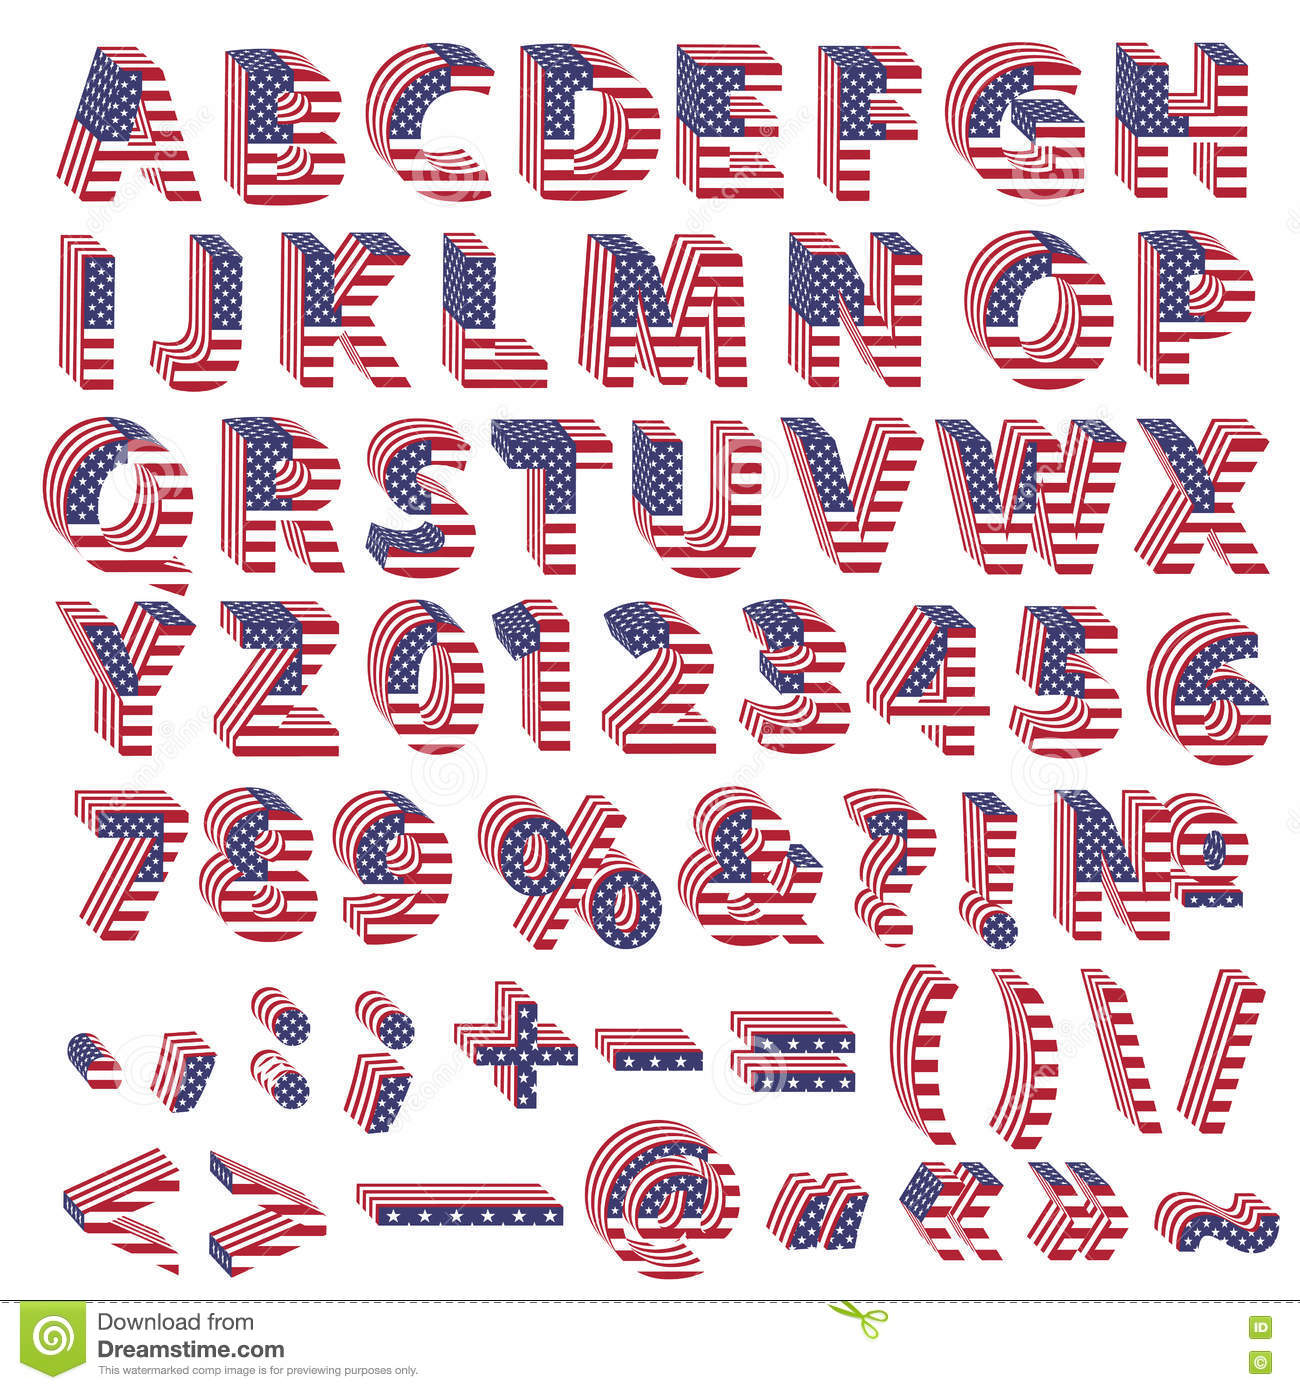 Full alphabet from usa flag letters stock illustration full alphabet from usa flag letters biocorpaavc Image collections